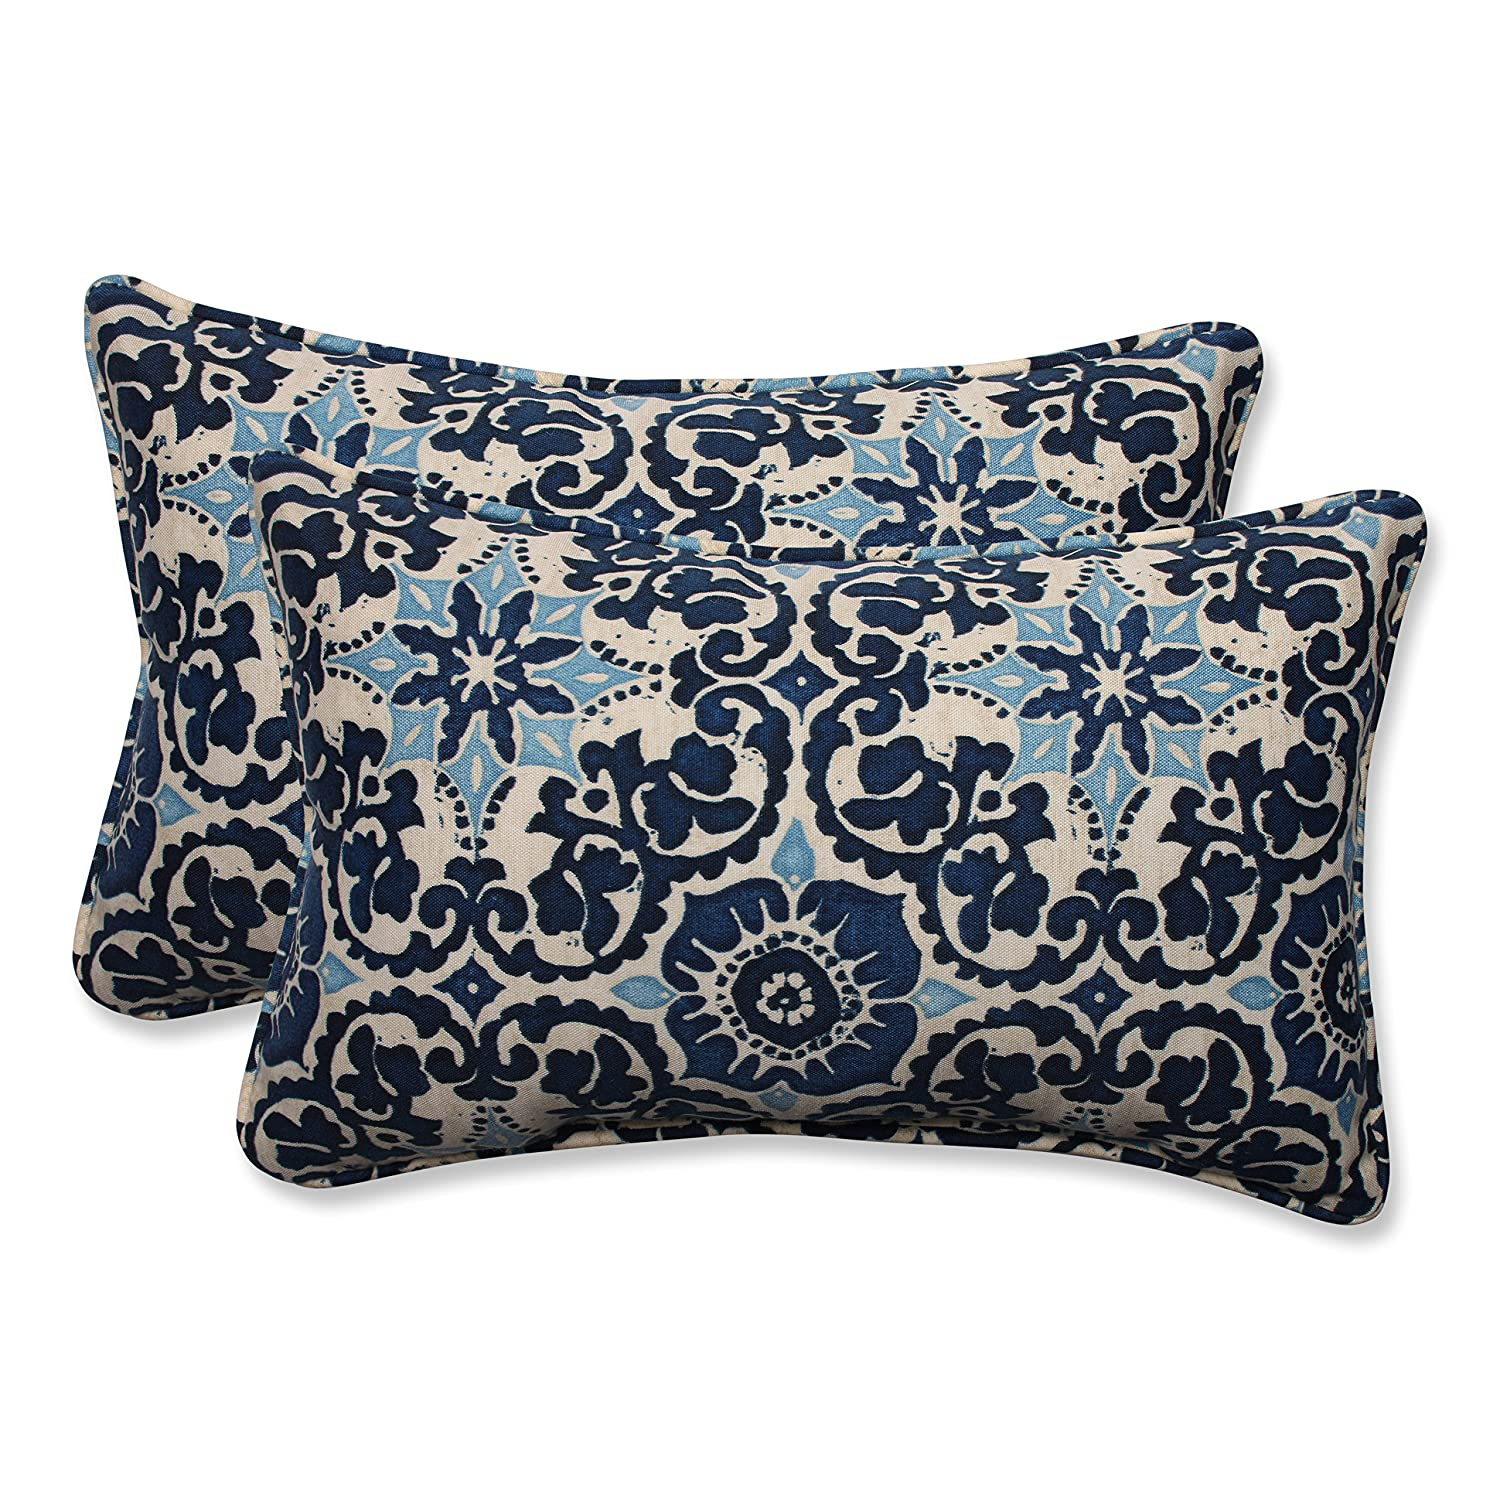 Pillow Perfect Outdoor/Indoor Woodblock Prism Rectangular Throw Pillow (Set of 2), Blue Inc. 586670